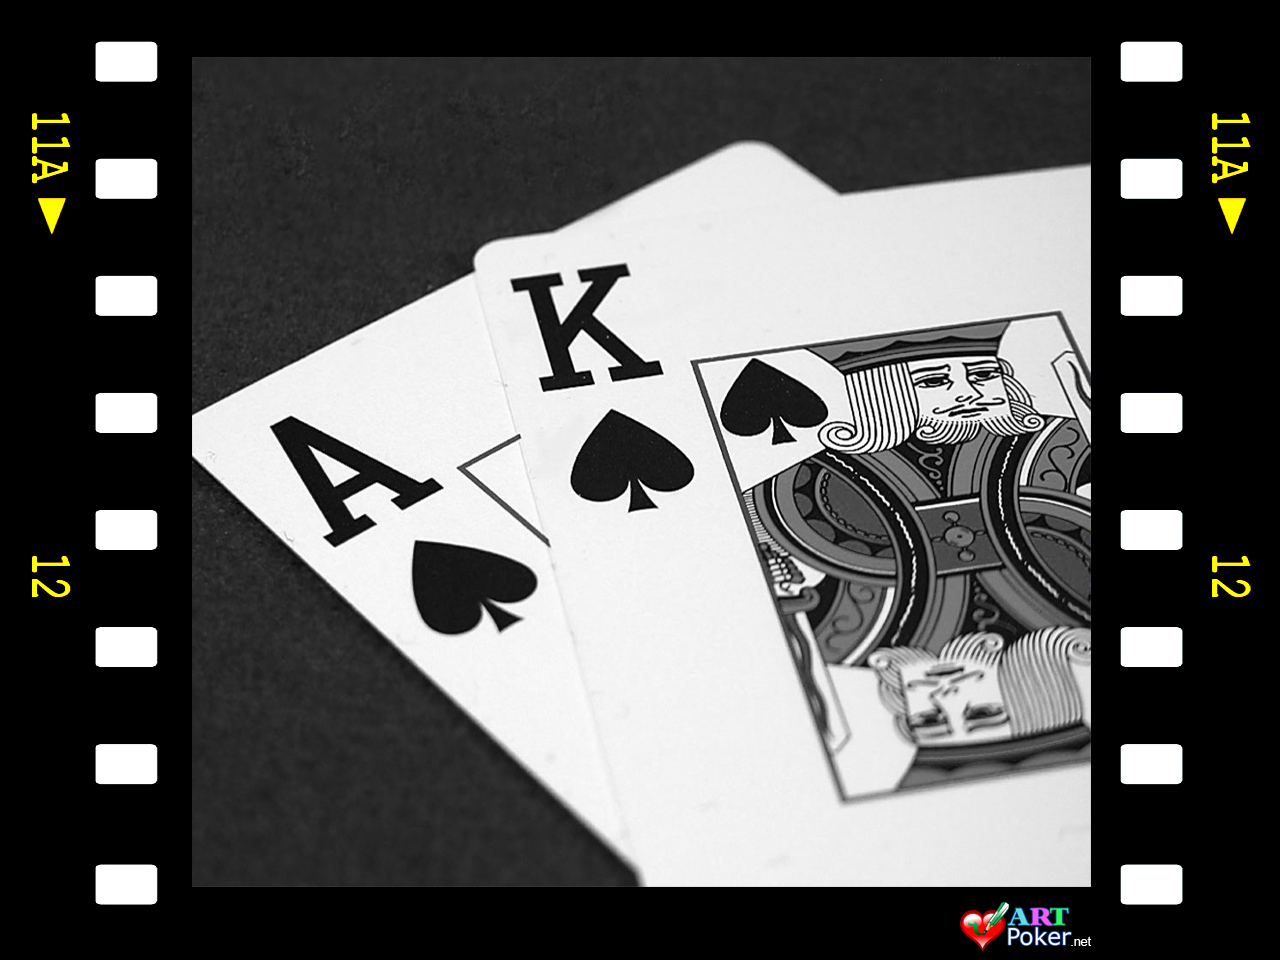 Poker Cards Wallpaper - 1280x960 Wallpaper